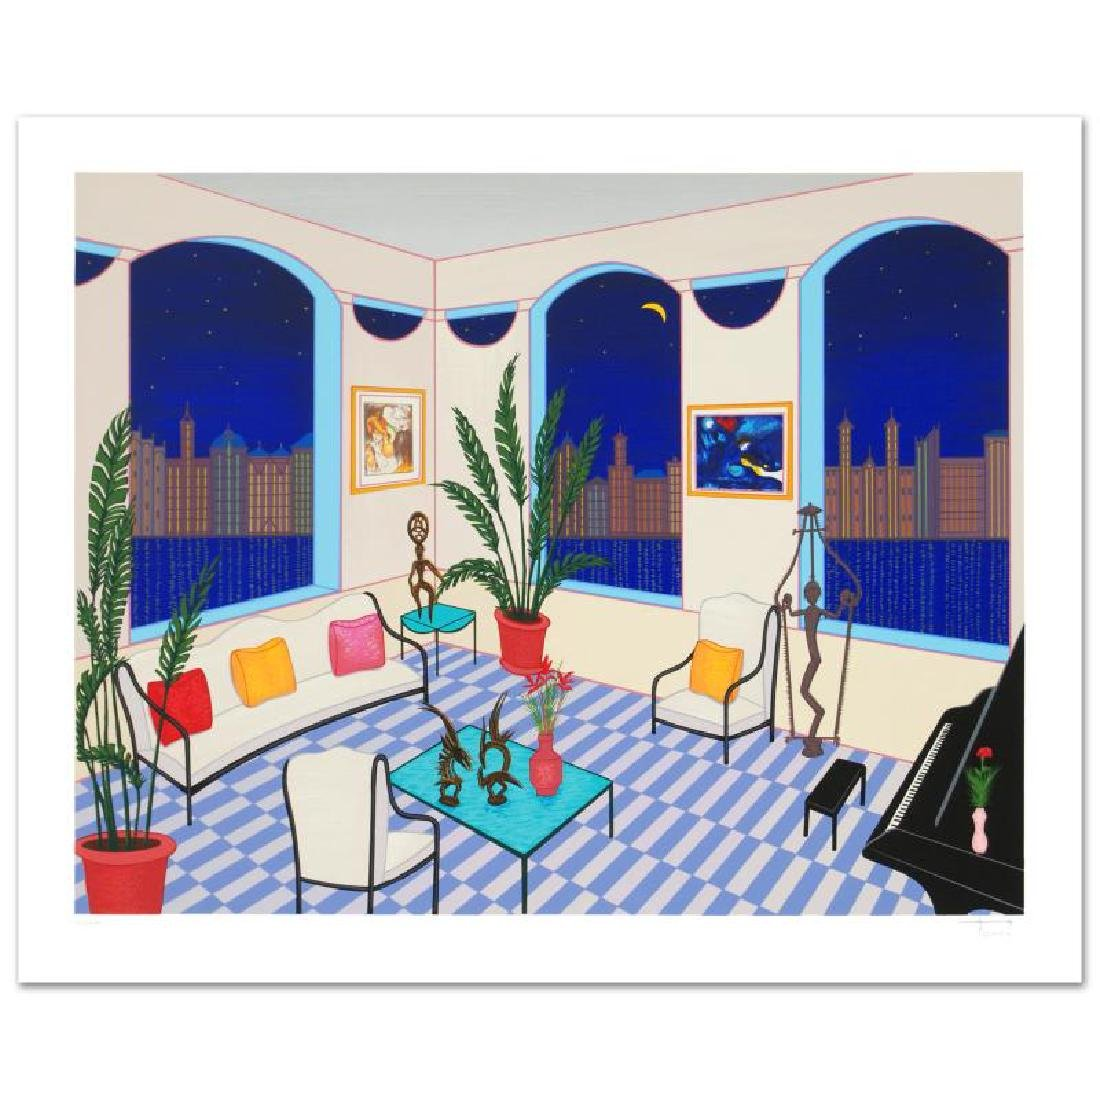 Interior with Primitive Art Limited Edition Serigraph